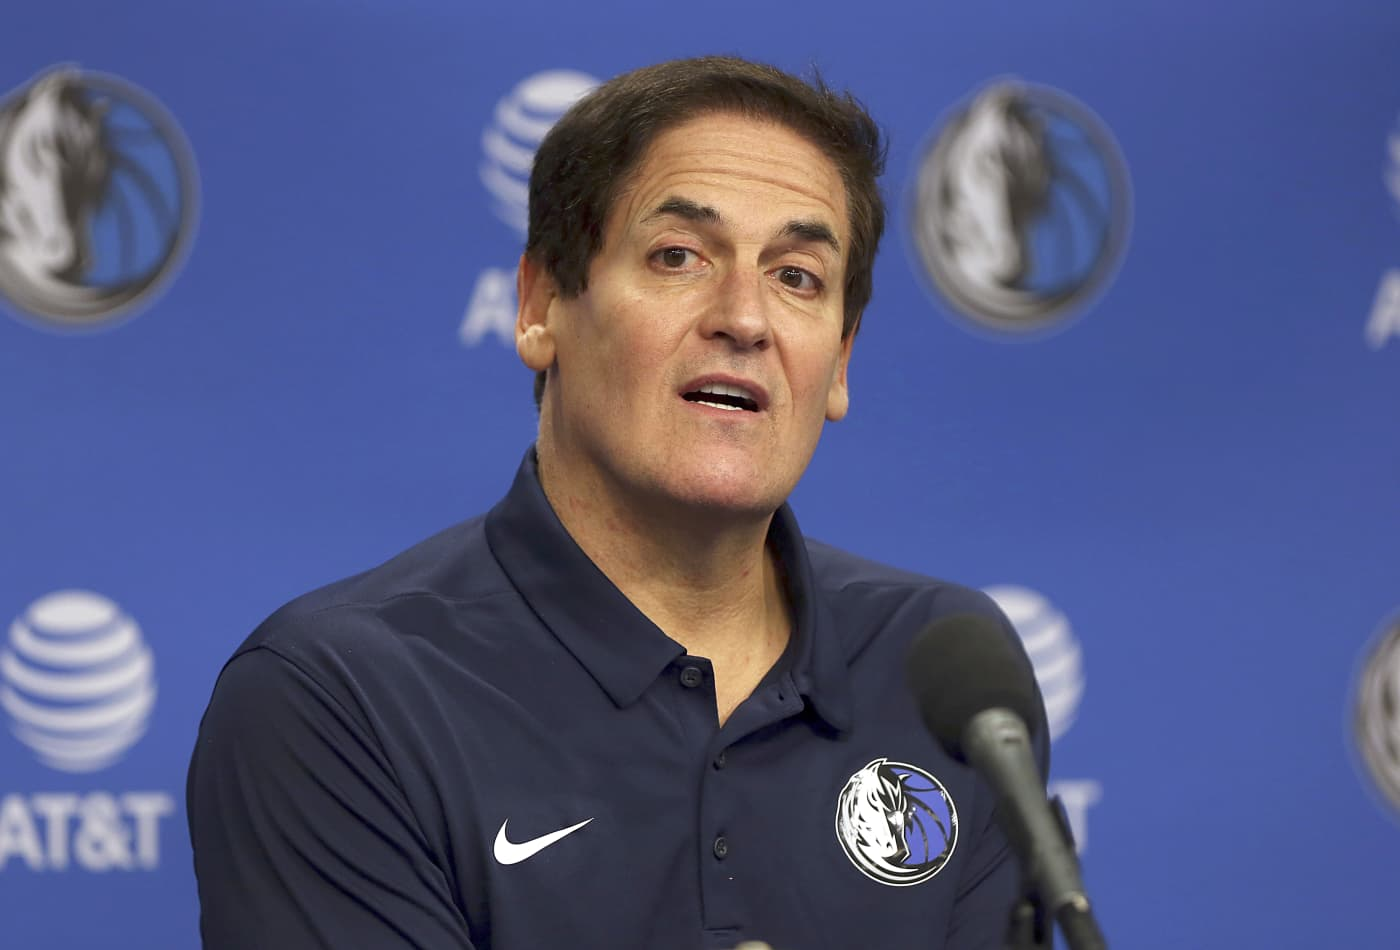 'Don't get greedy' — Mark Cuban warns investors of stock similarities to 1990s dot-com bubble